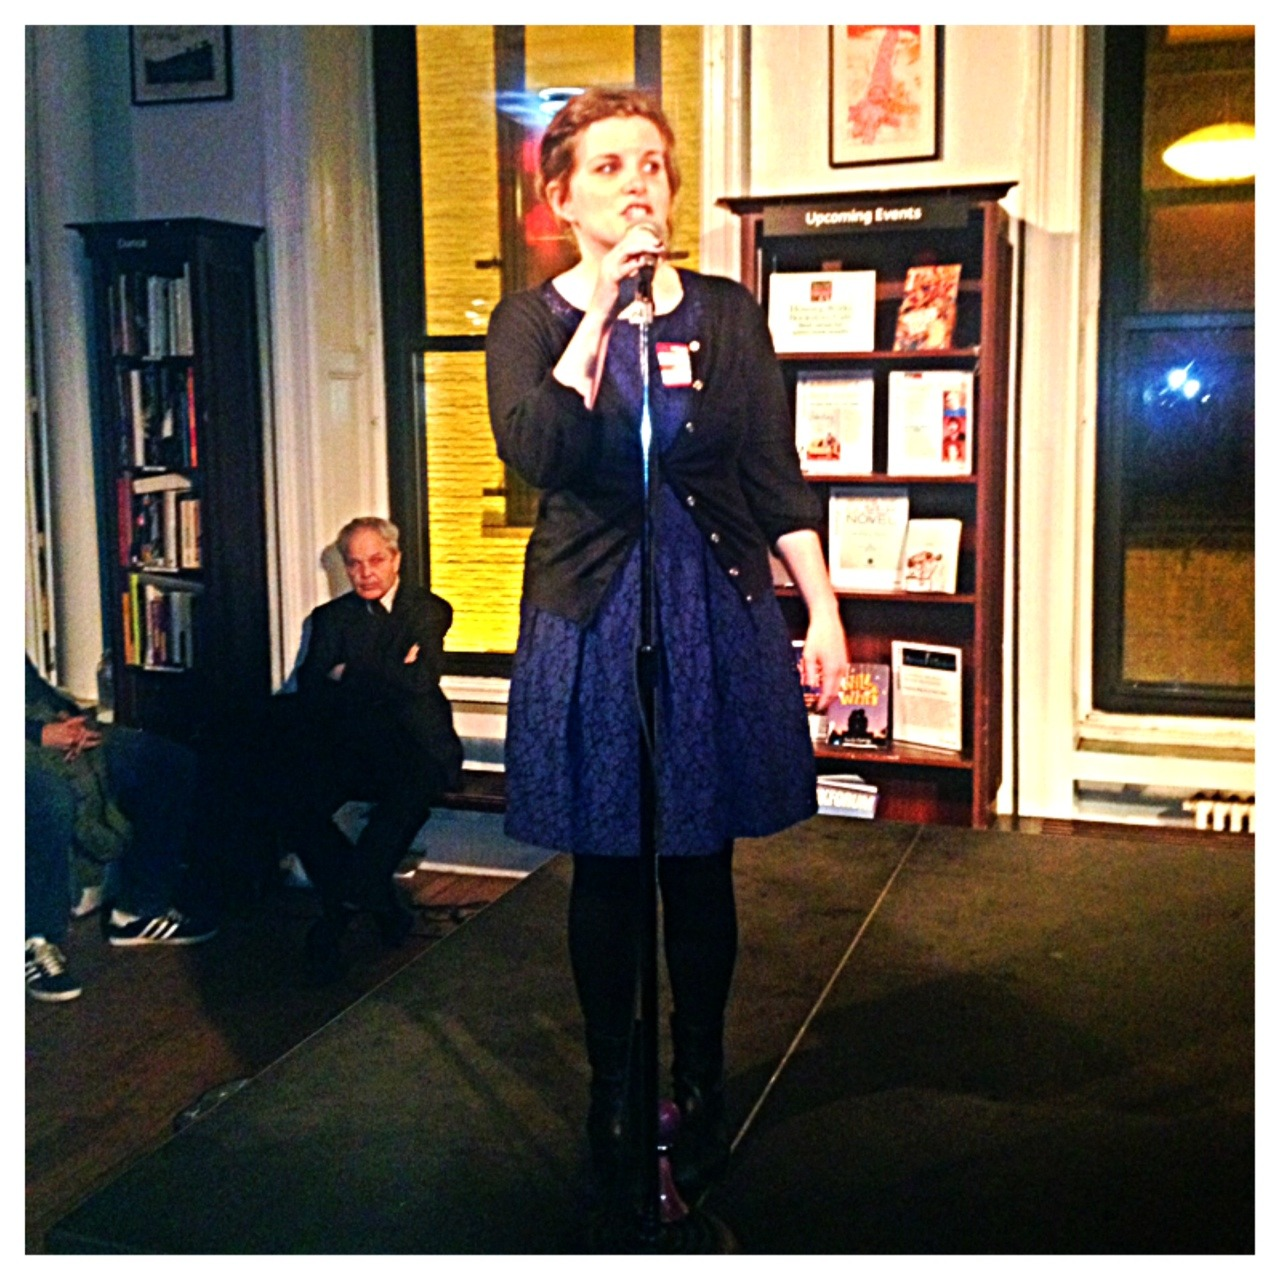 Last night at Housing Works Bookstore Cafe, we had a glorious launch party for the wonderful Tumblr-born book Adulting: How to Become a Grown-up in 468 Easy(ish) Steps by Kelly Williams Brown.  The night featured stories of being not-quite-grown-up from some of the Internet's funniest writers: Kelly, Julieanne Smolinski, Lindsey Weber, Christine Friar, Caragh Poh, John Asante, and Kelly's editor Meredith Haggerty. Our guest bookseller Word Brooklyn sold out of every last copy! If you need a great graduation gift, a guide to life, or a bunch of hilarious Tumblrs to follow while you procrastinate everything you're supposed to be doing, we've got you covered.